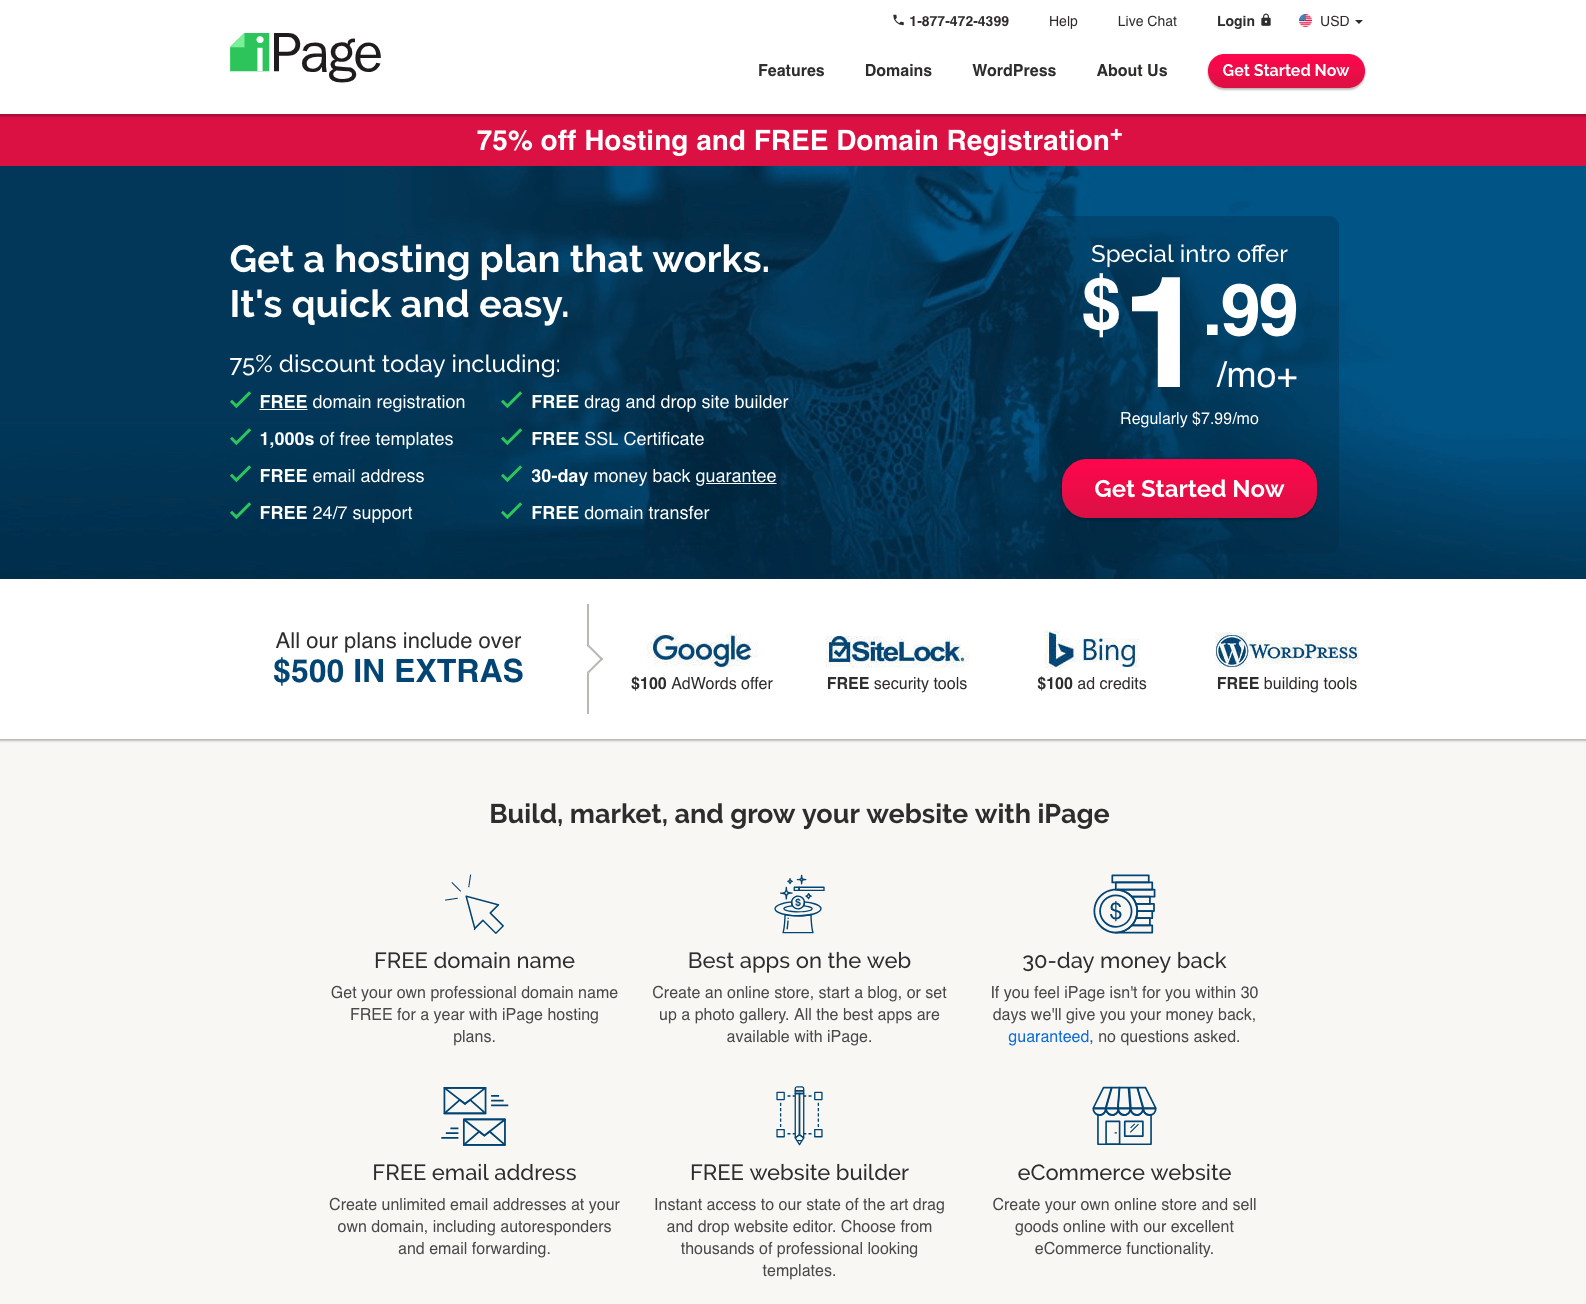 iPage Hosting Reviews: Dirt Cheap Hosting at $1 99/mo - August 2019